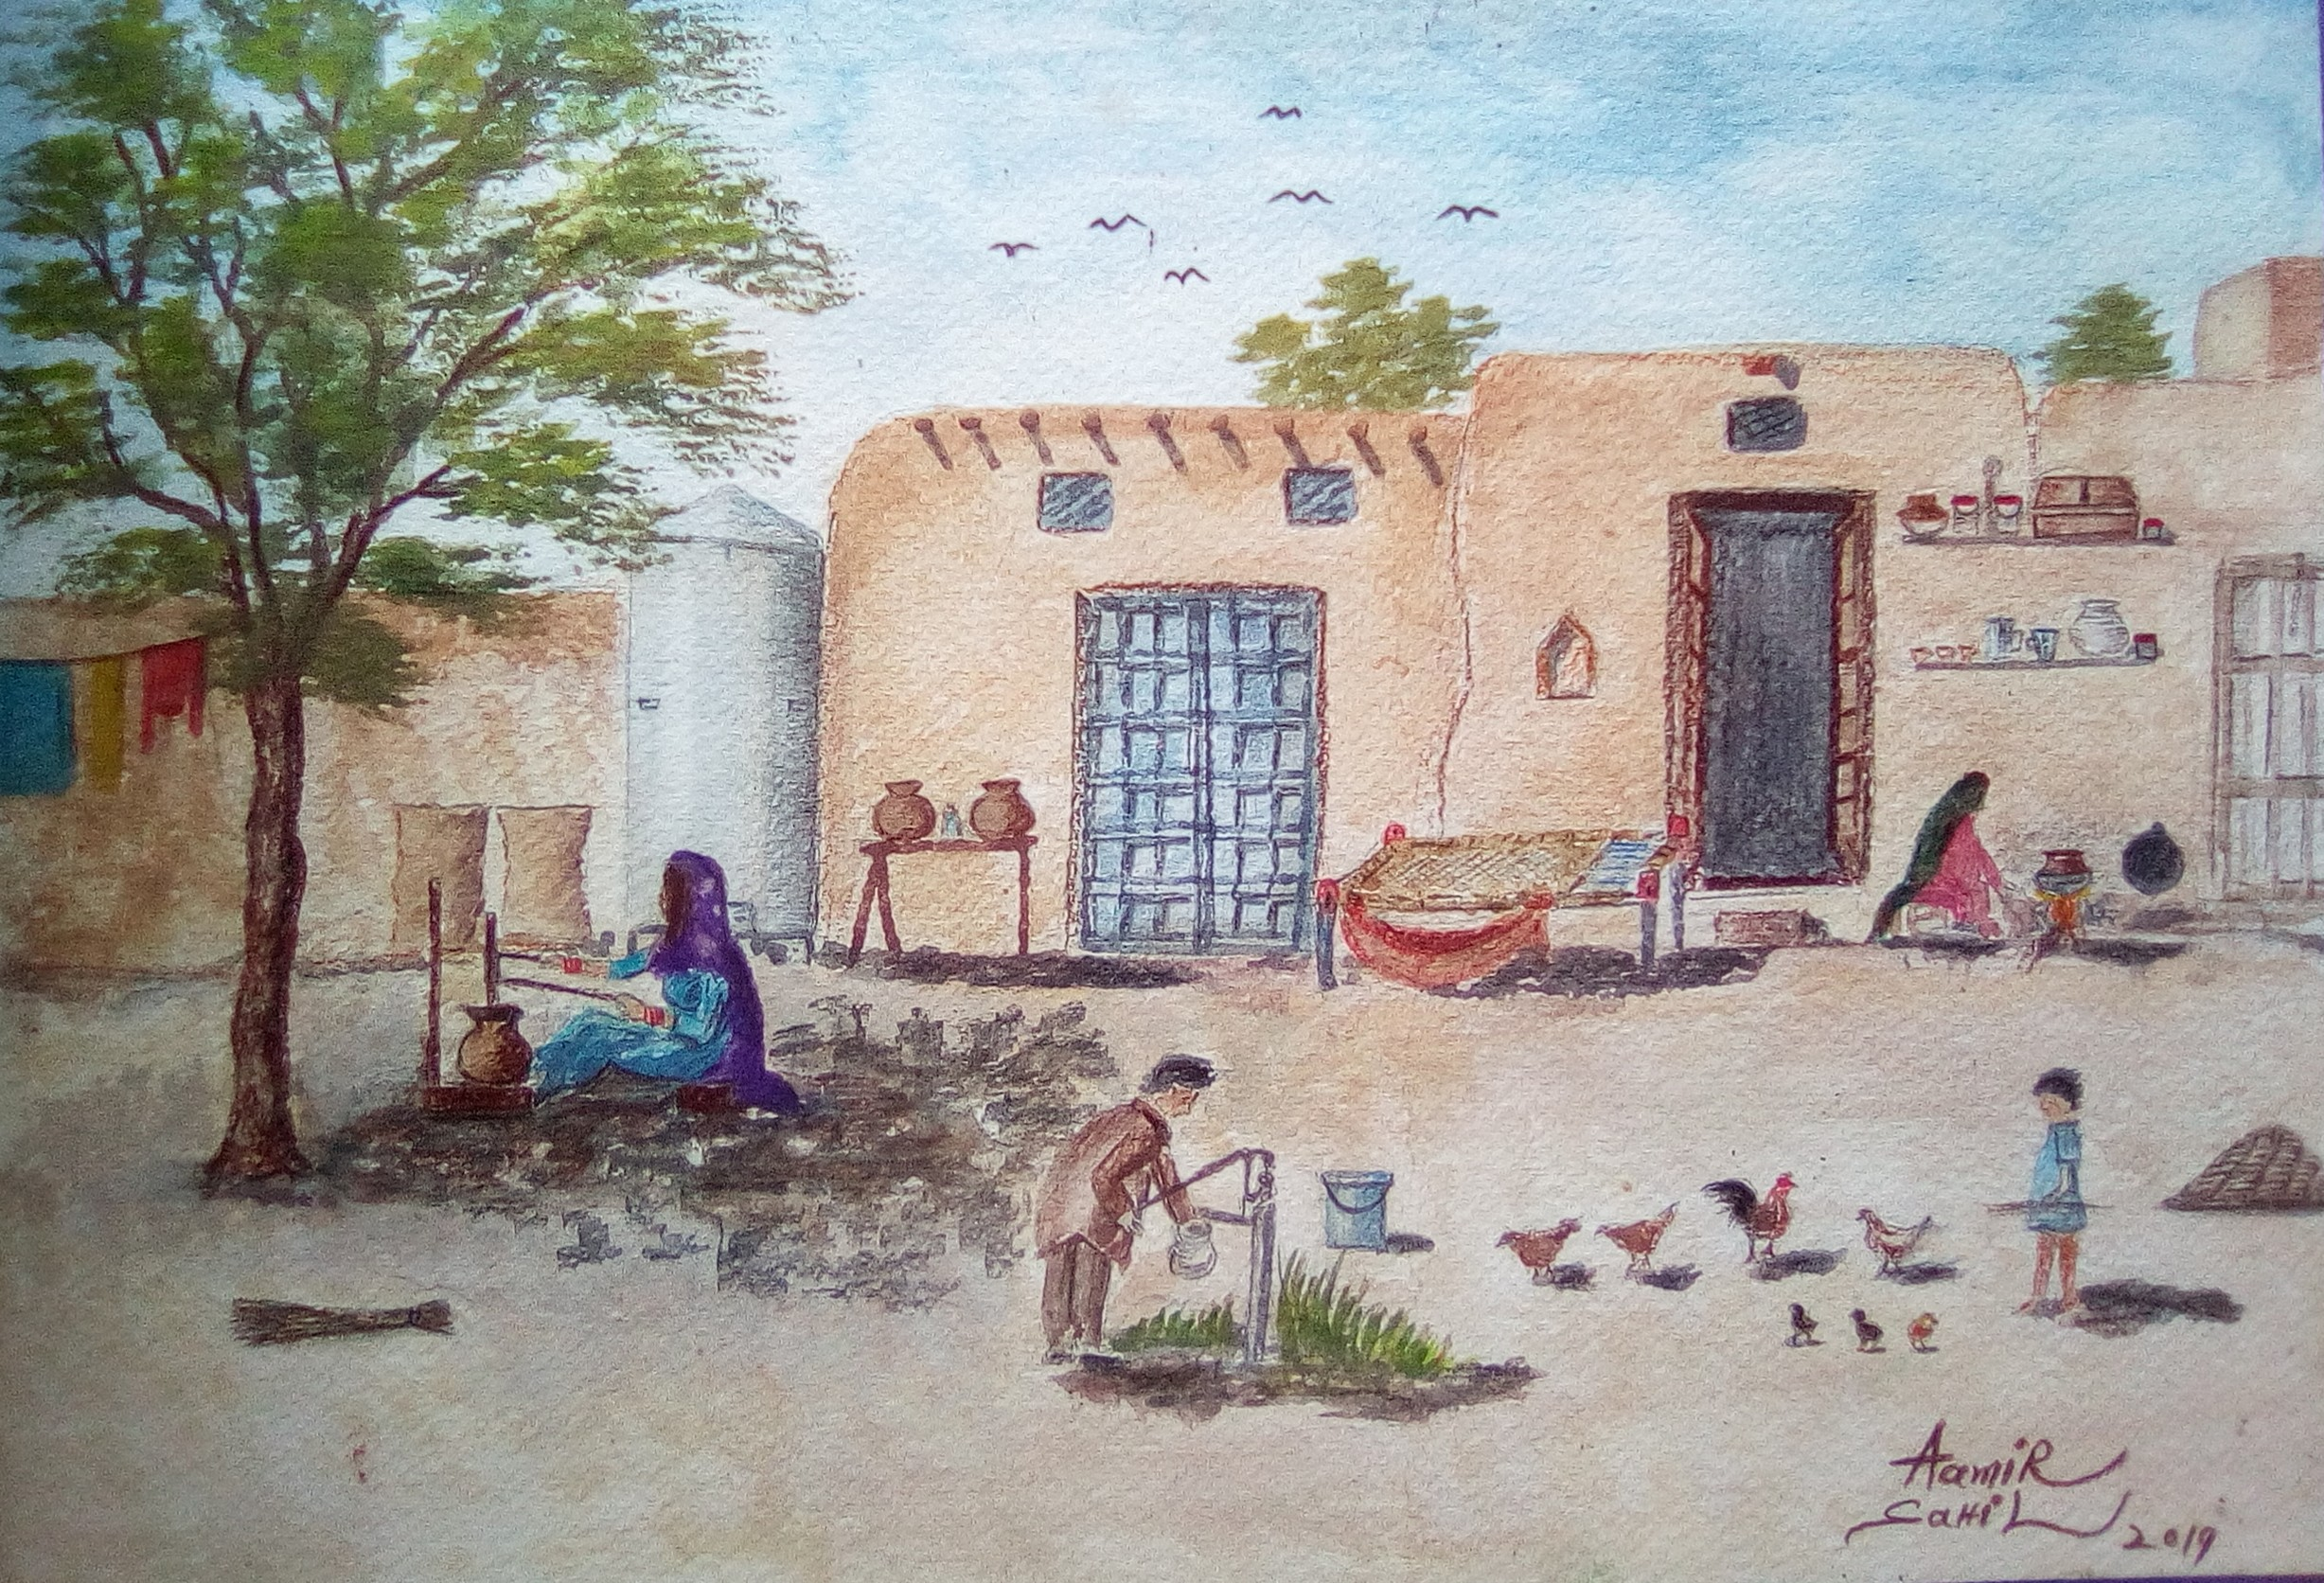 Watercolor on paper    8 x 12 inches    Price: 4000 USdollars